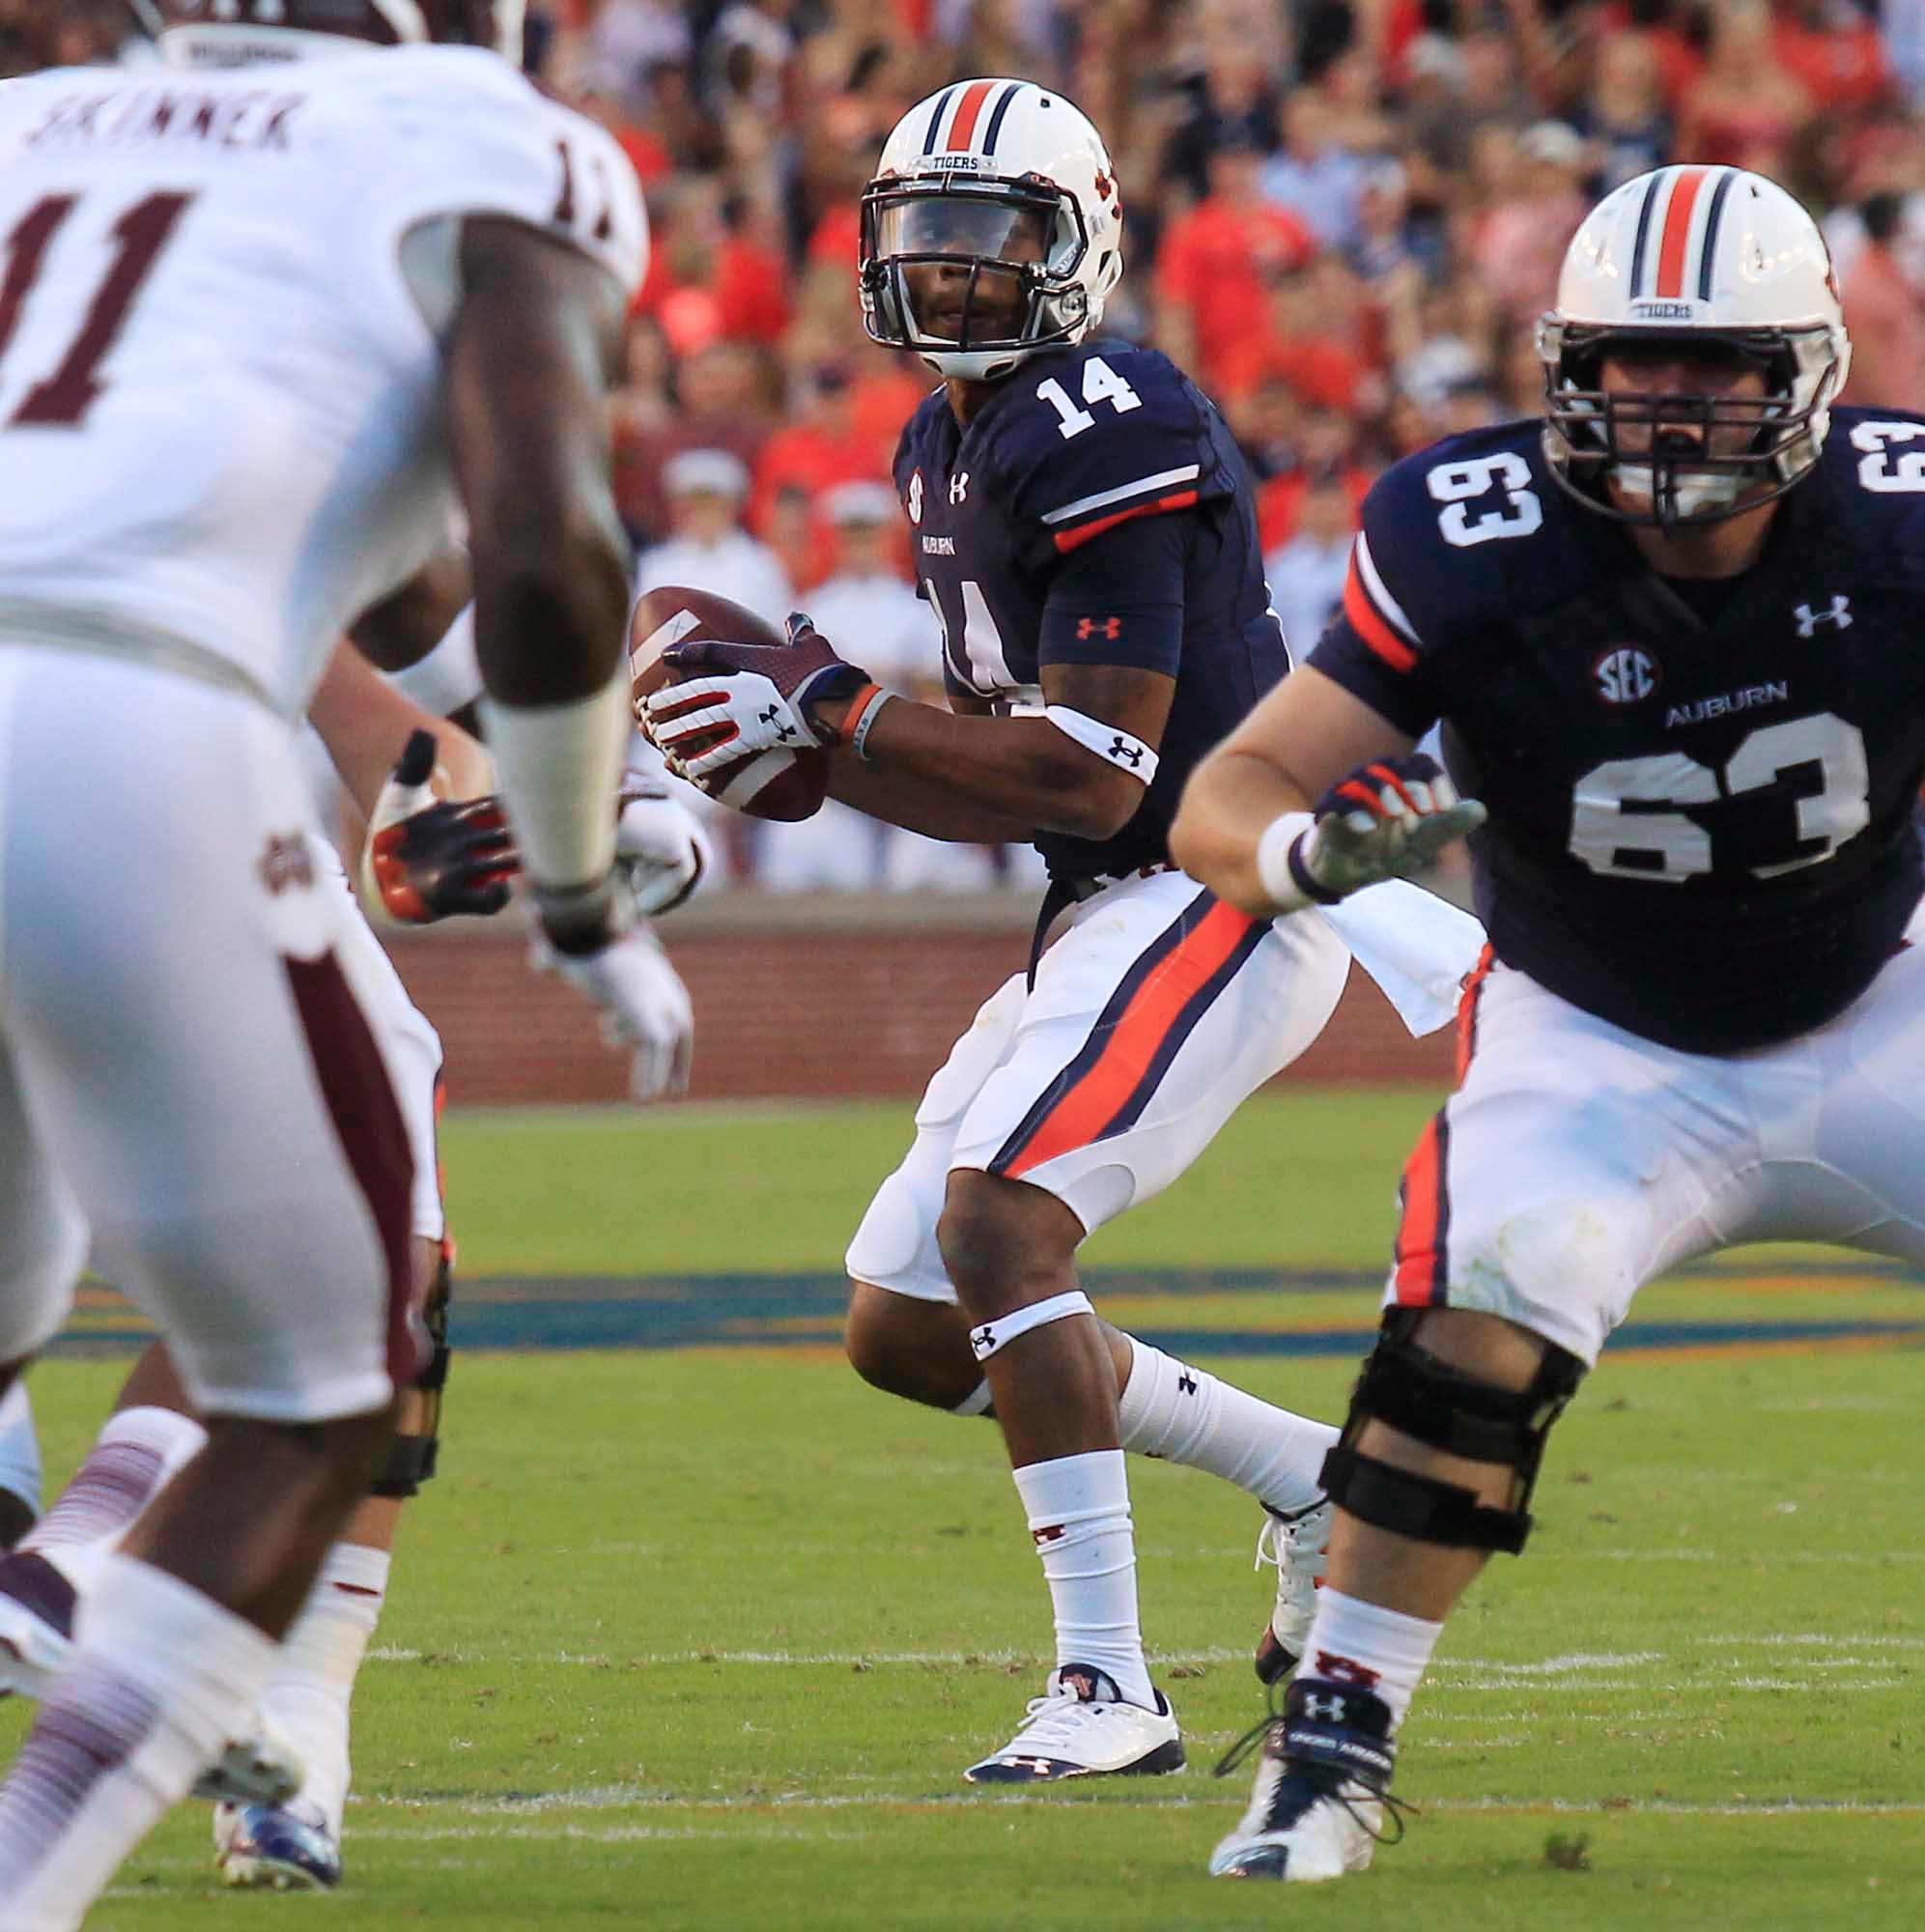 Auburn quarterback Nick Marshall drops back to pass. (Source: Todd van Emst/Auburn University)